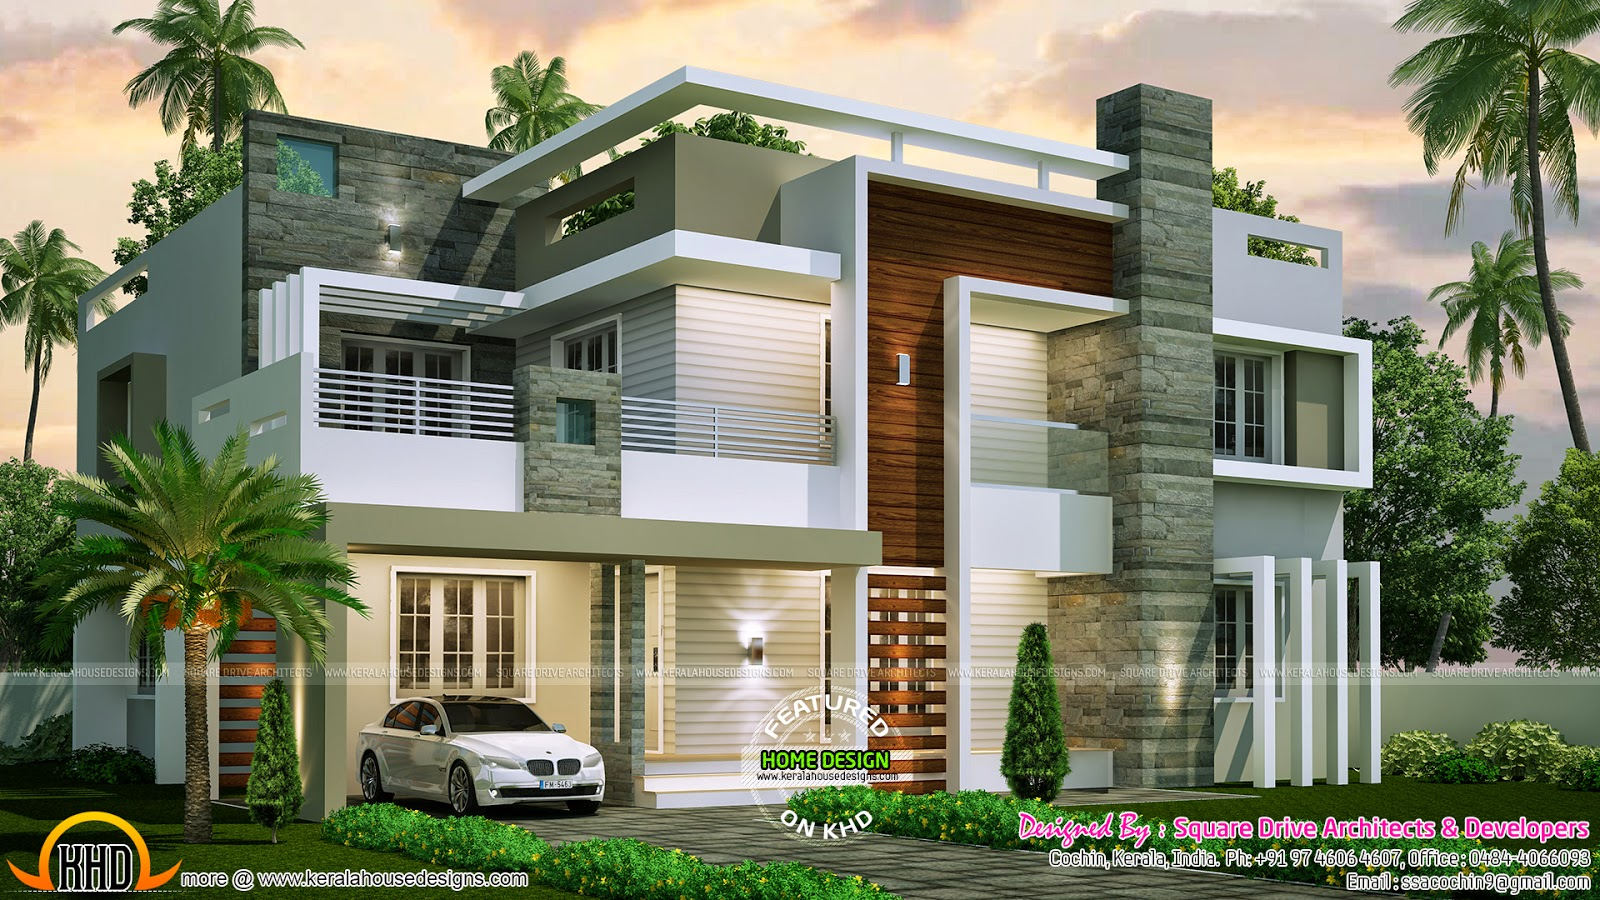 4 bedroom contemporary home design kerala home design for Modern house design 2018